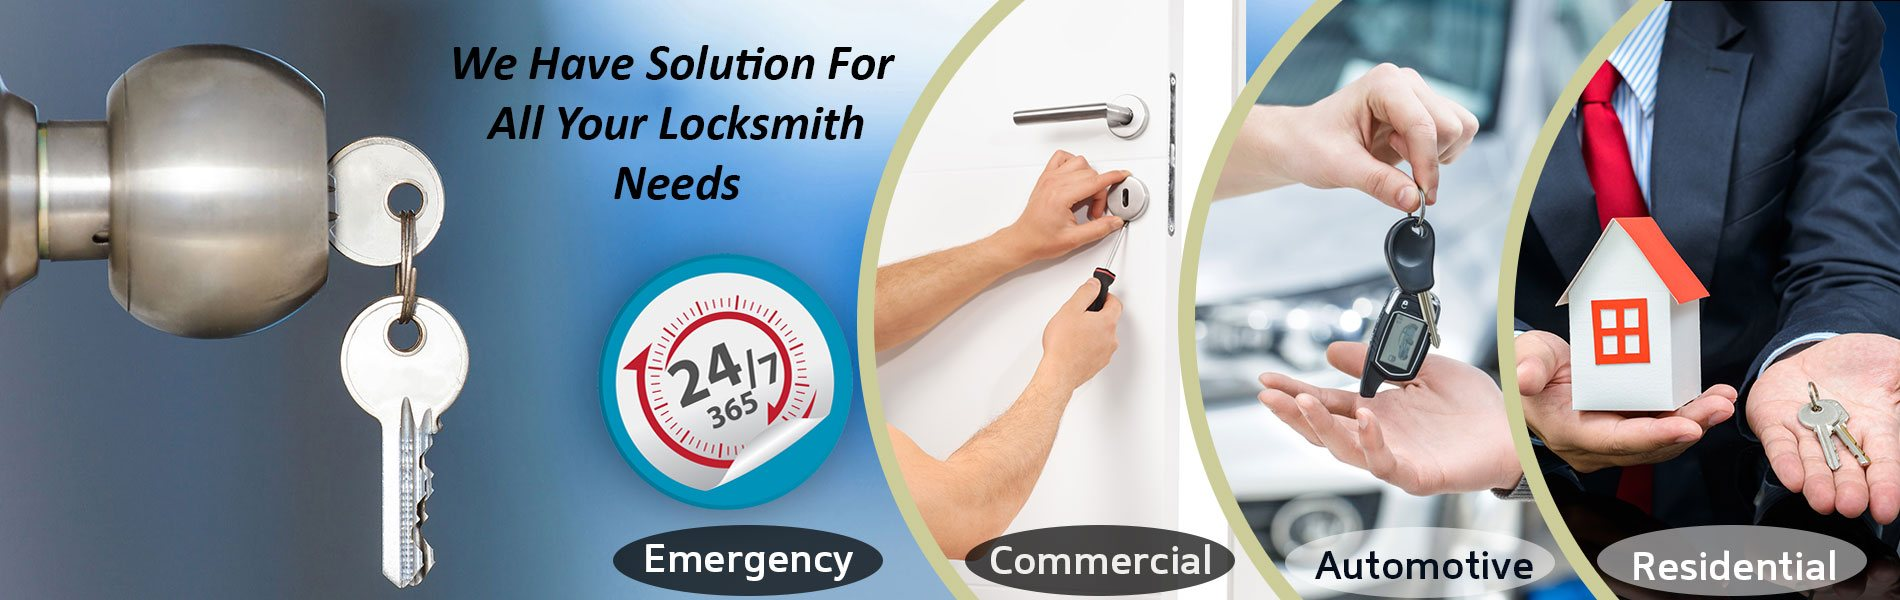 Neighborhood Locksmith Store Columbus, OH 614-295-5894